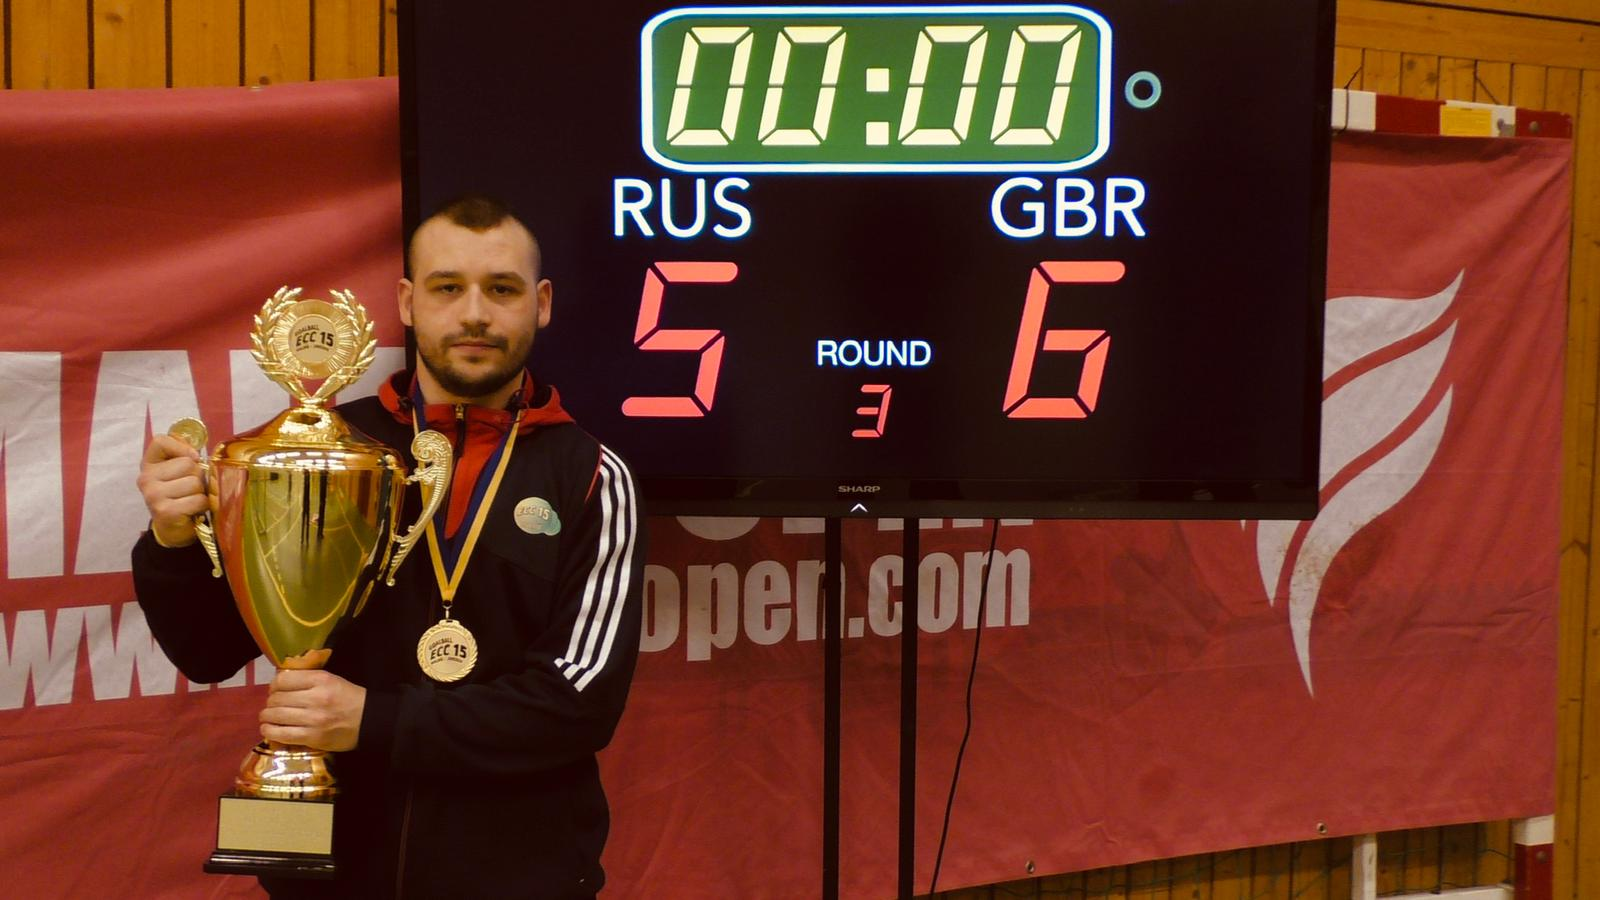 Image shows Dave Butler at the European Championships in front of a scoreboard, holding a trophy